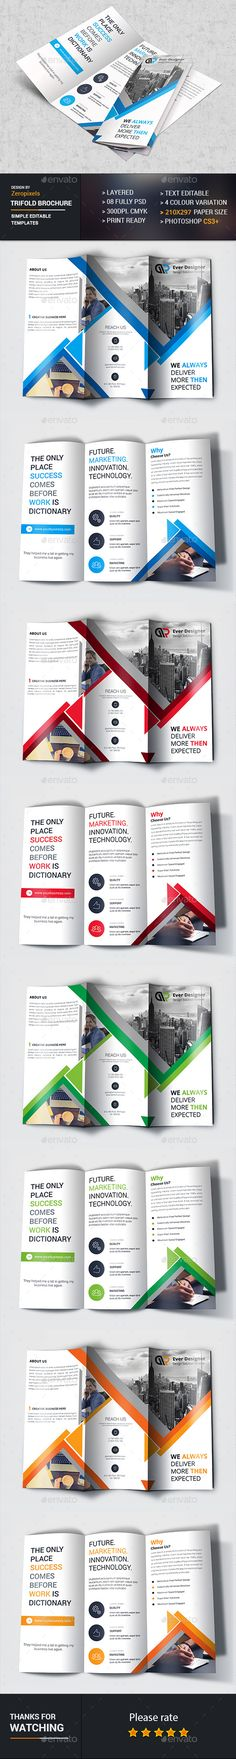 Corporate Trifold Brochure Template PSD. Download here: http://graphicriver.net/item/corporate-trifold/16875918?ref=ksioks